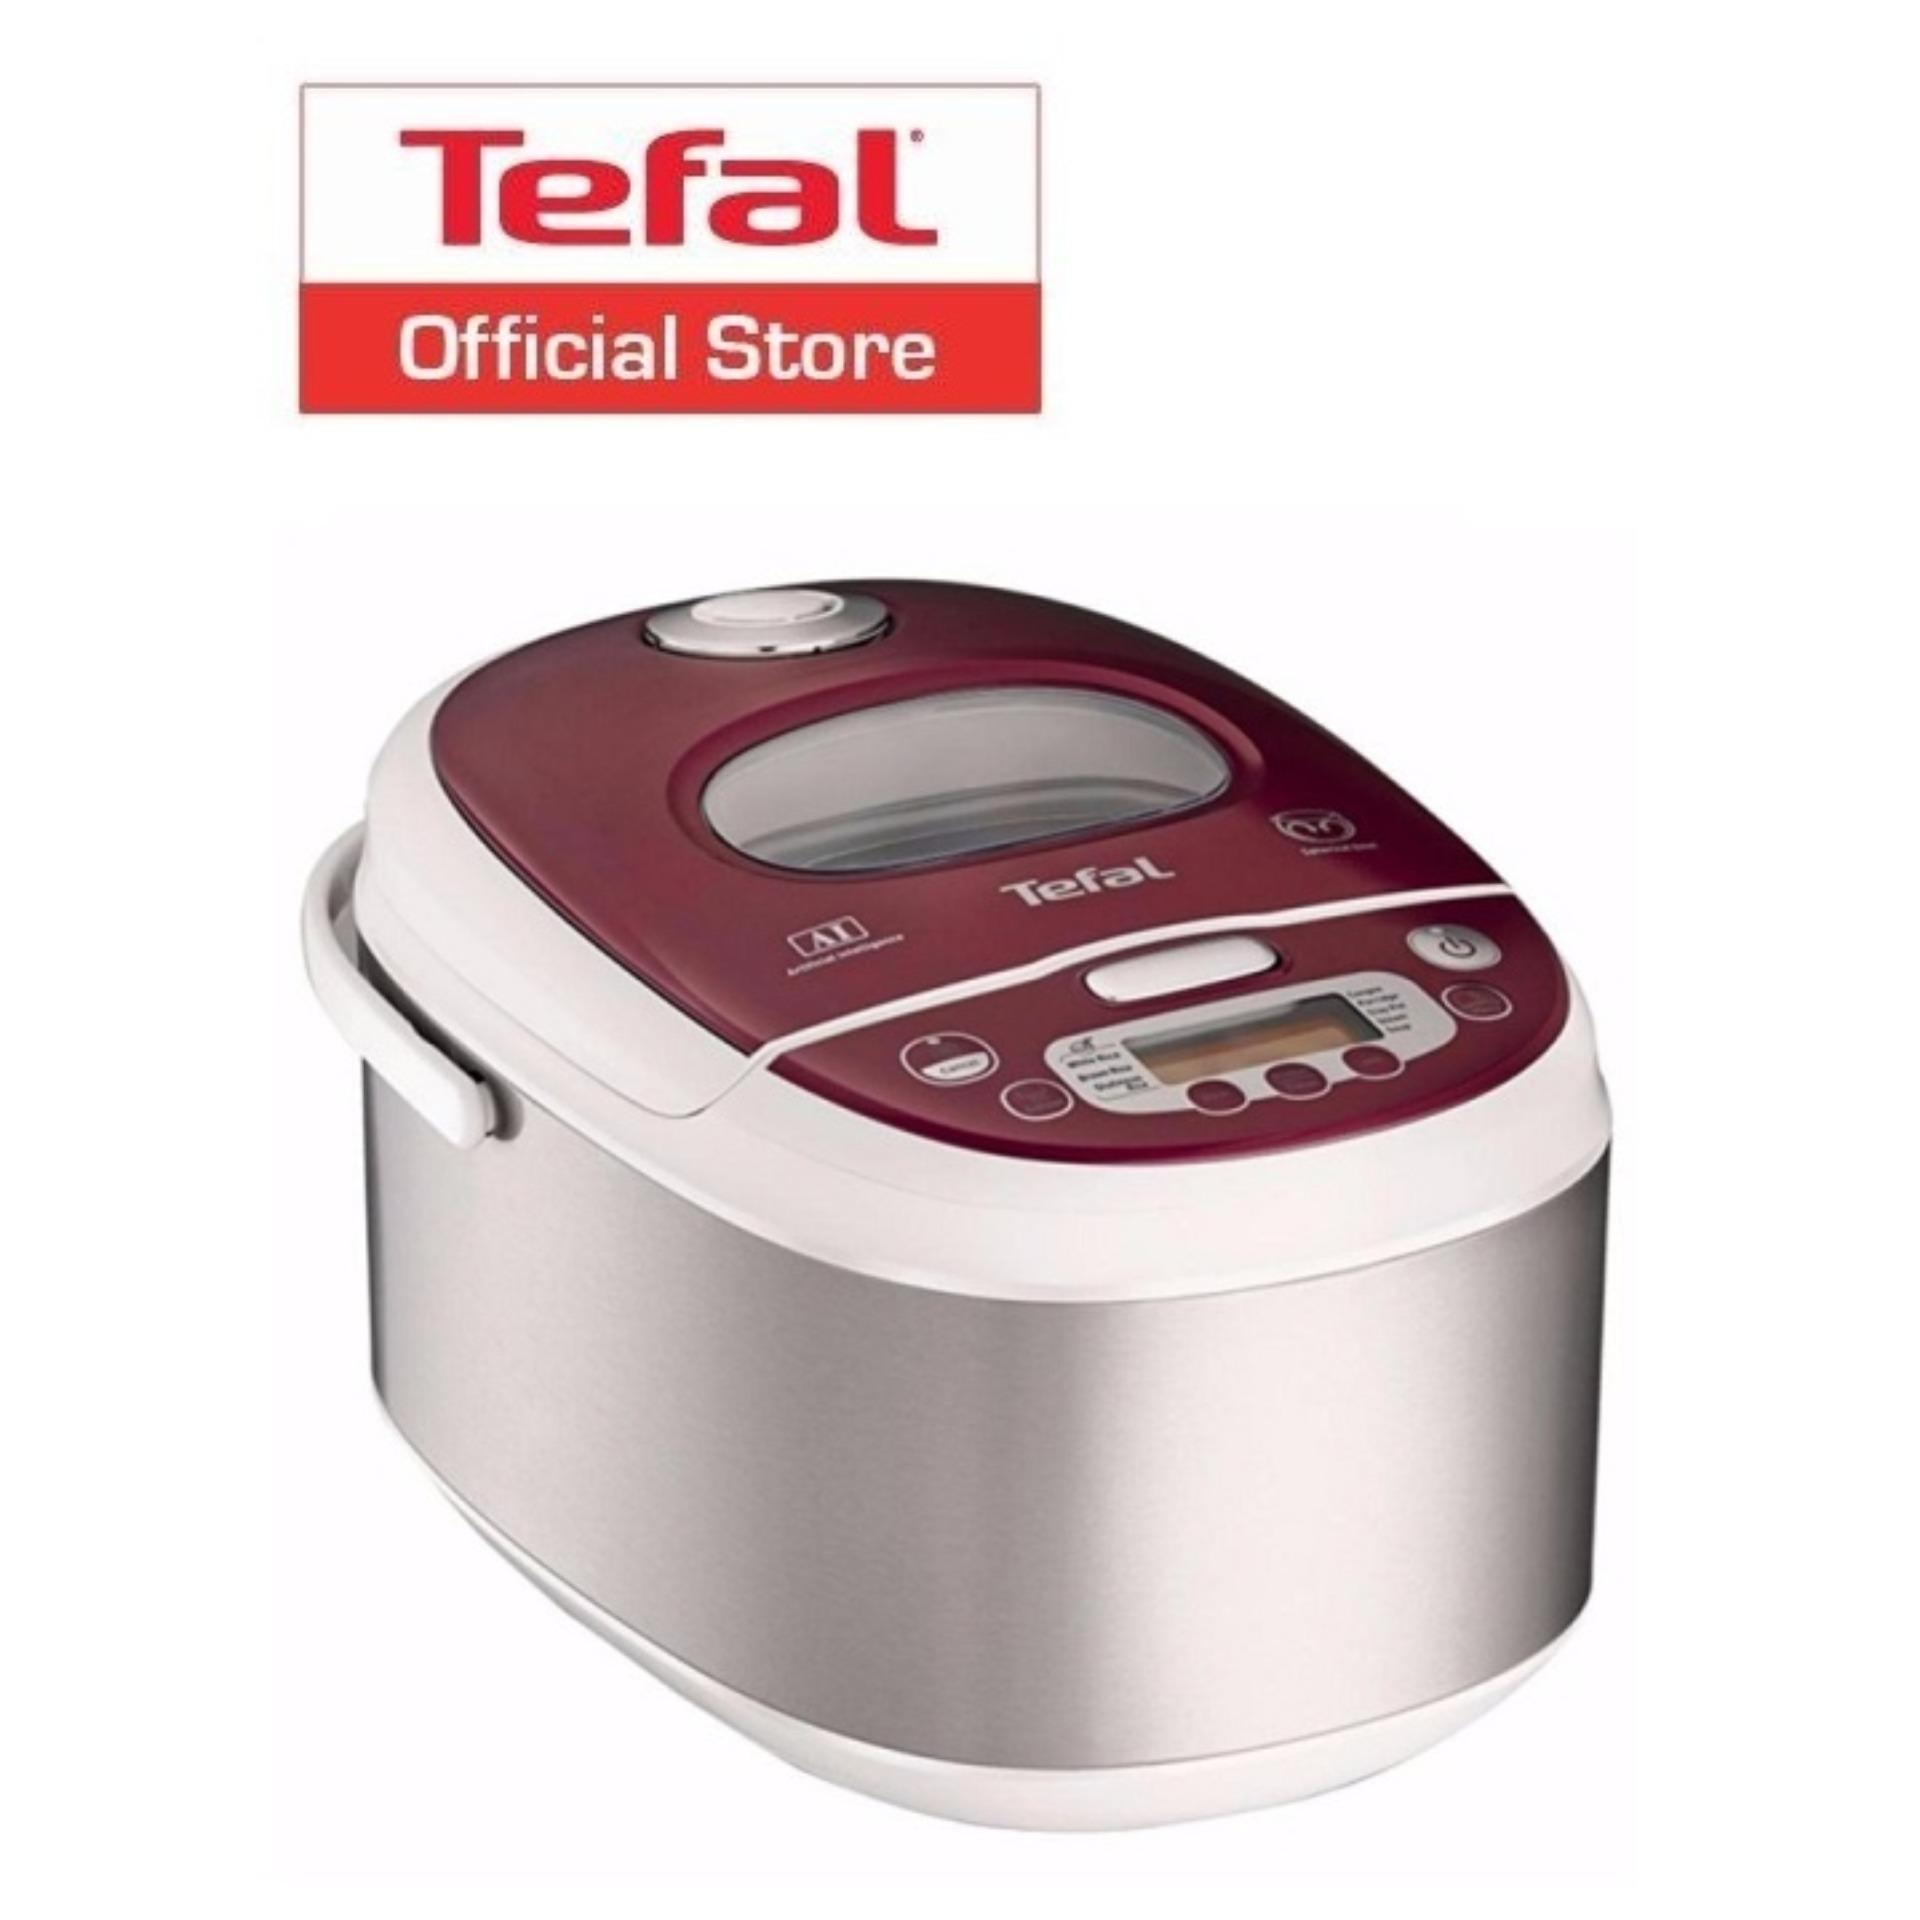 Discount Tefal Advanced 10 Program Fuzzy Logic Spherical Pot Rice Cooker 1 8L Rk8105 Singapore